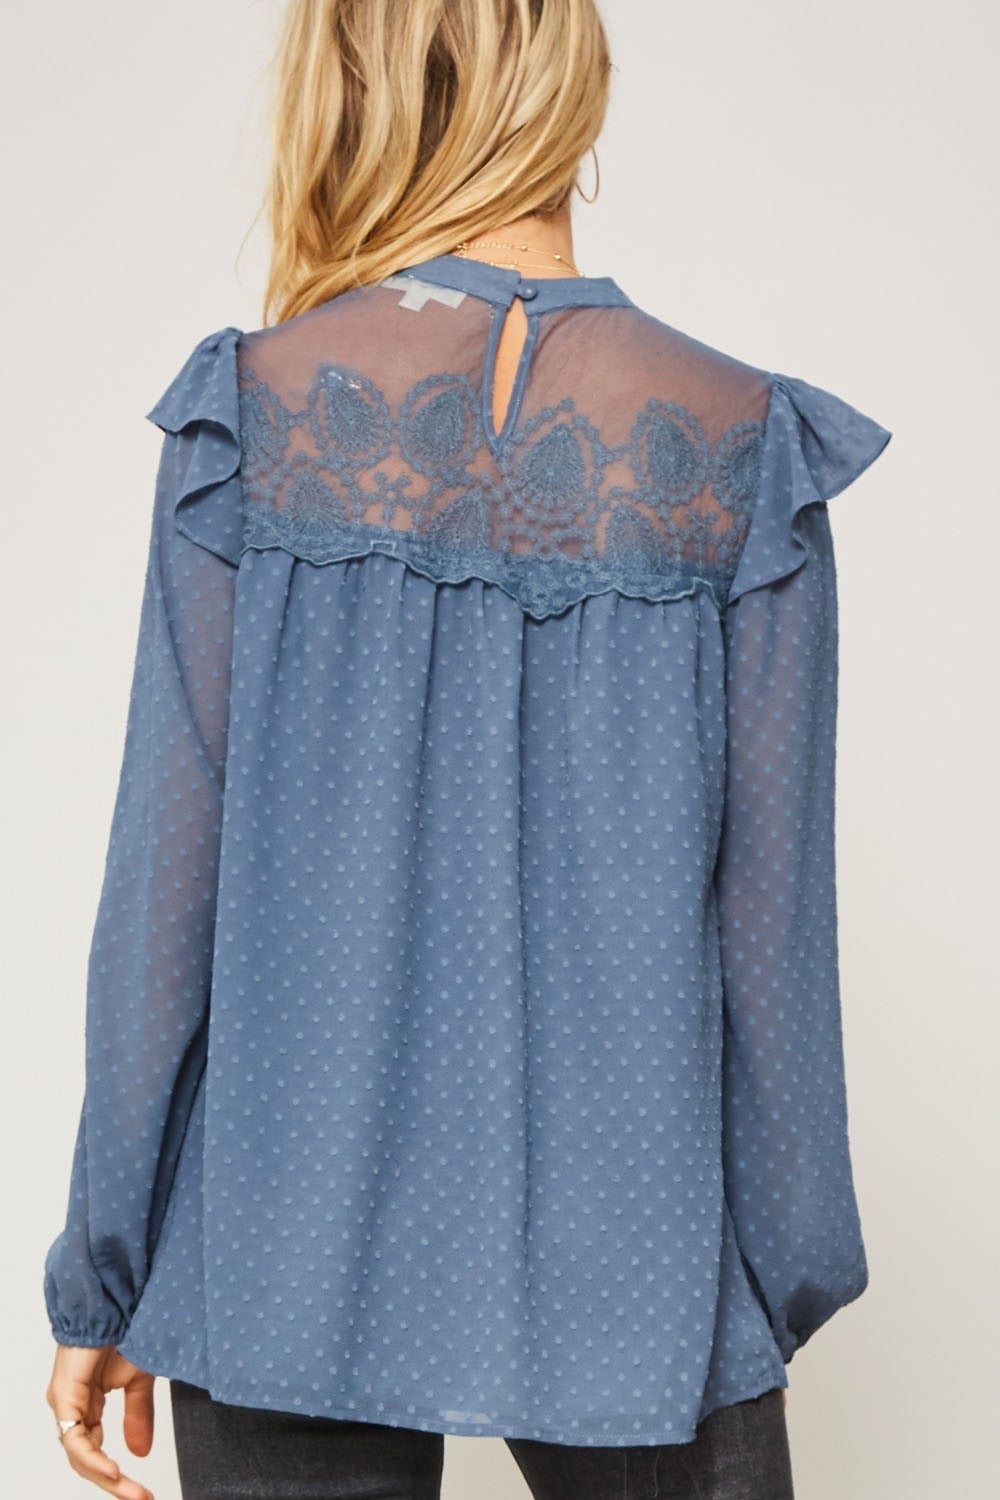 Swiss Dot Lace Blouse